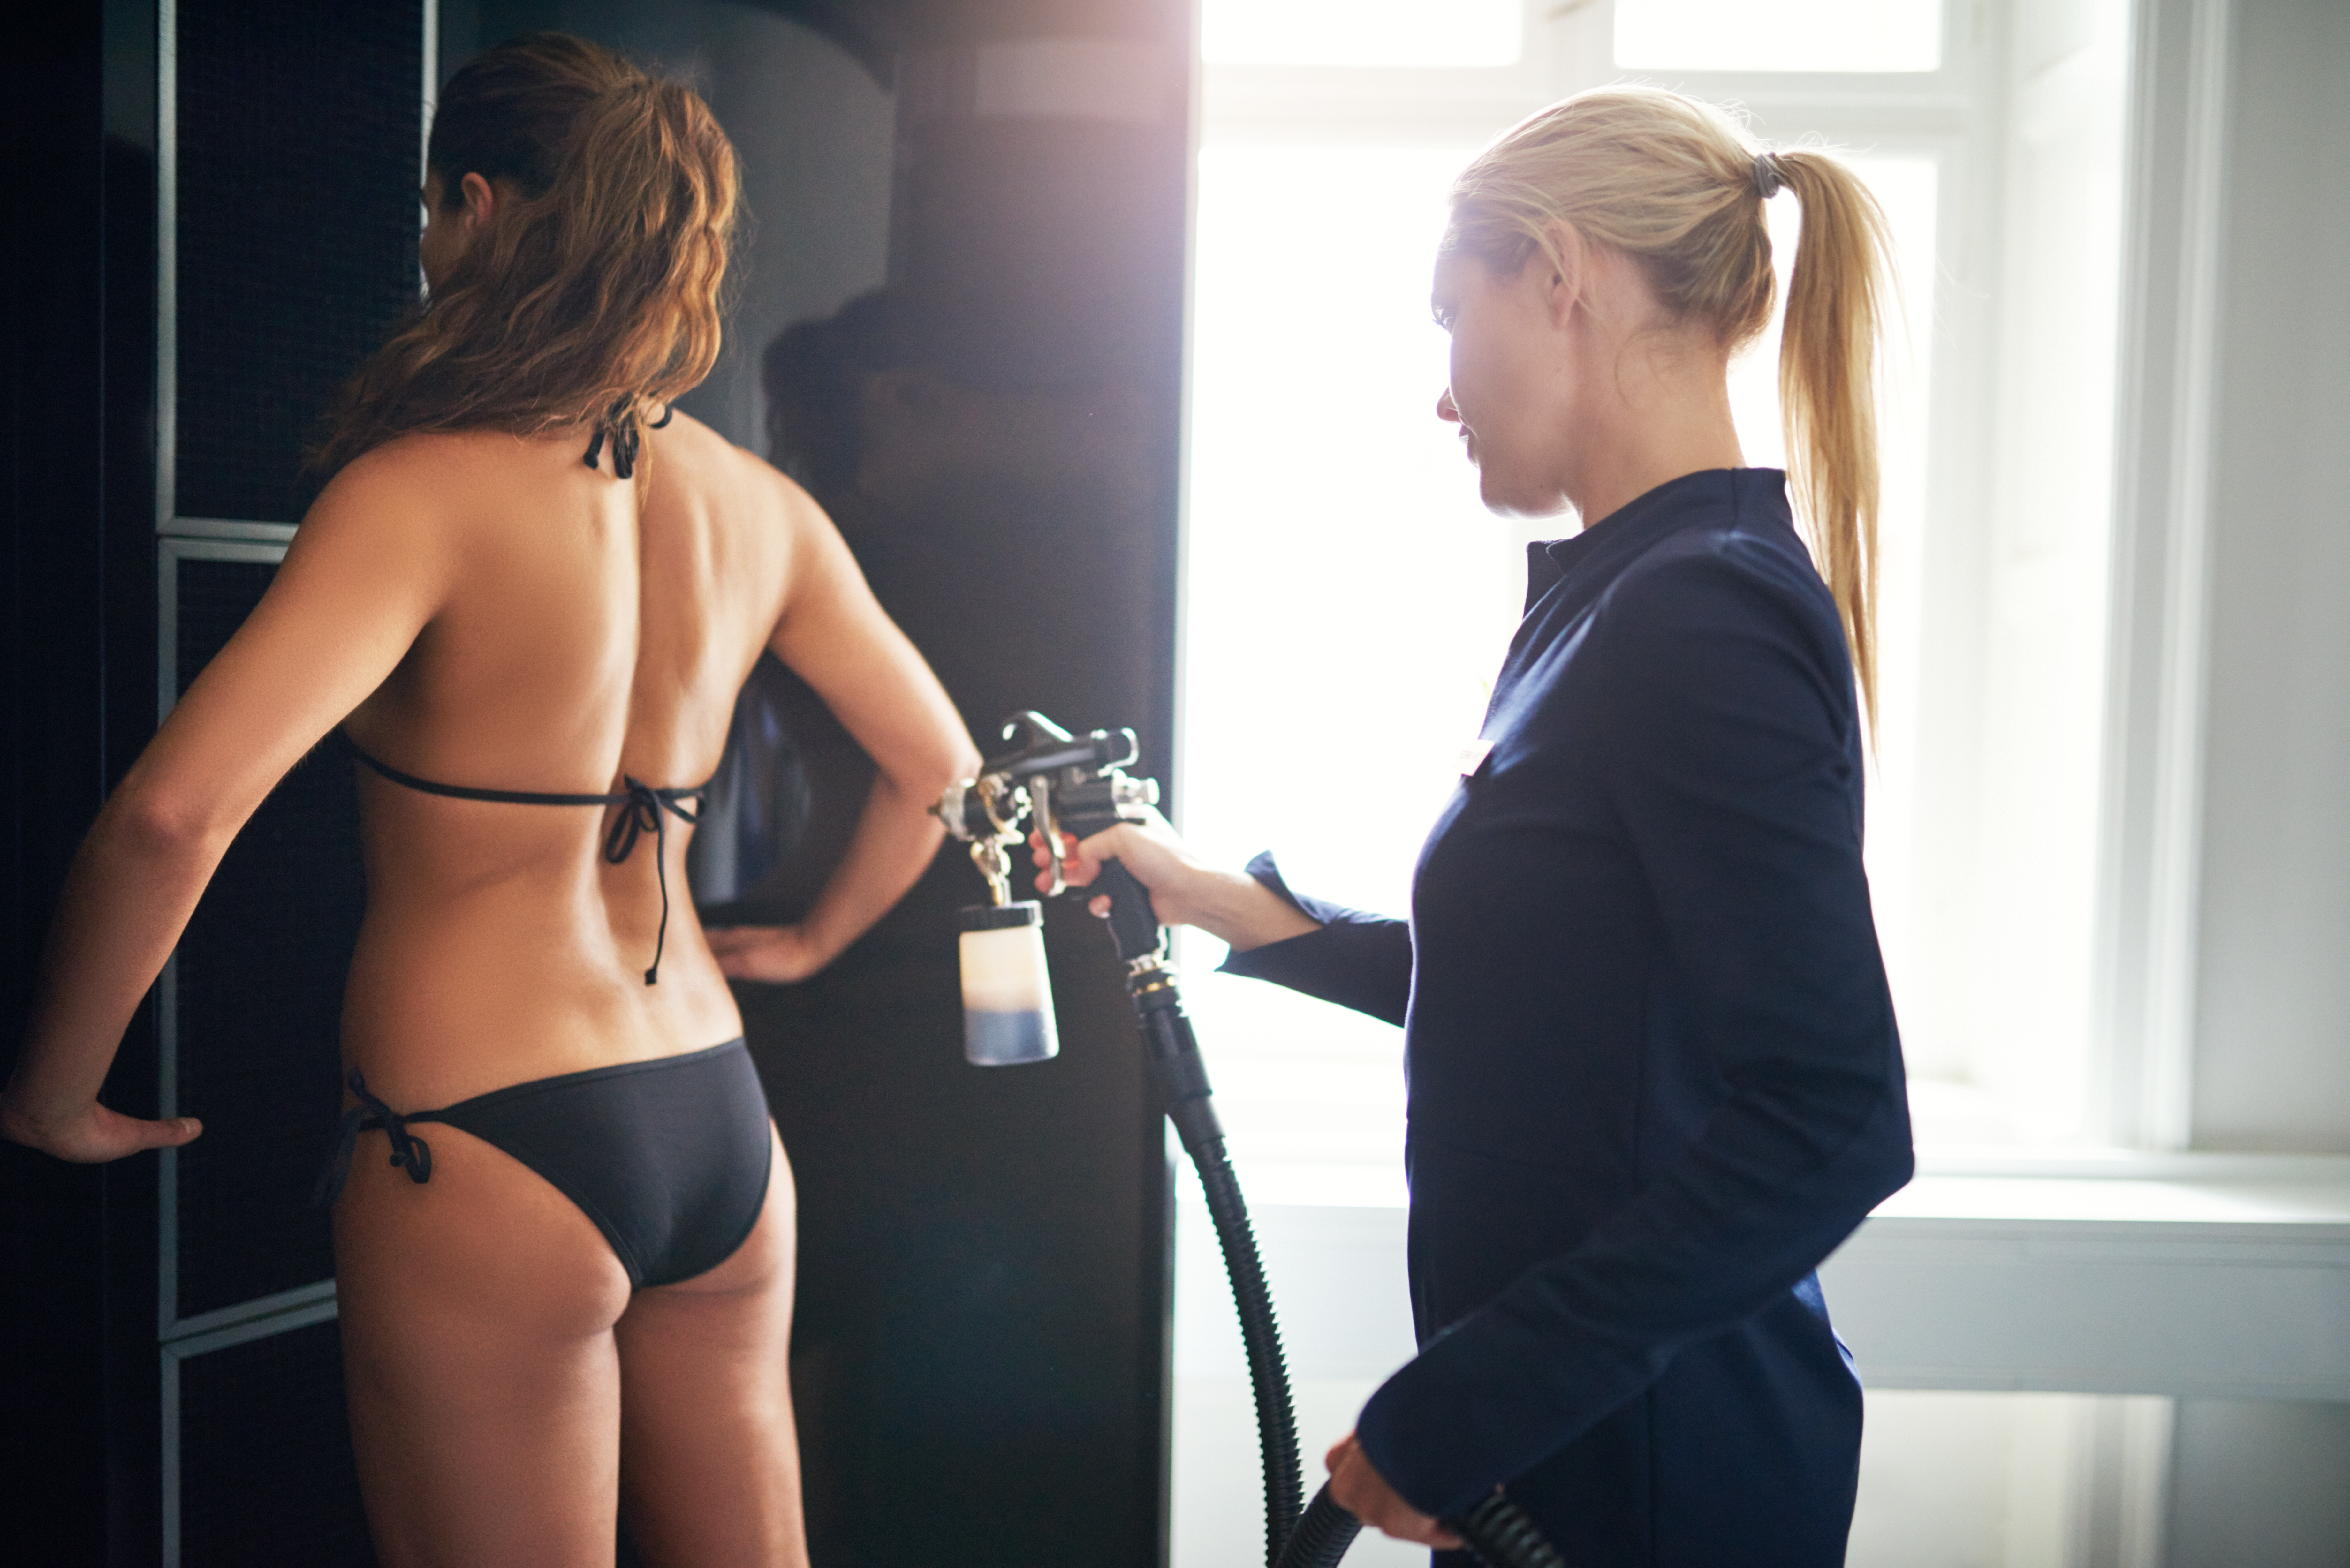 spray tanning near me, Misconception-Suns: Spray Tan Myths You Shouldn't Believe, House of Tans